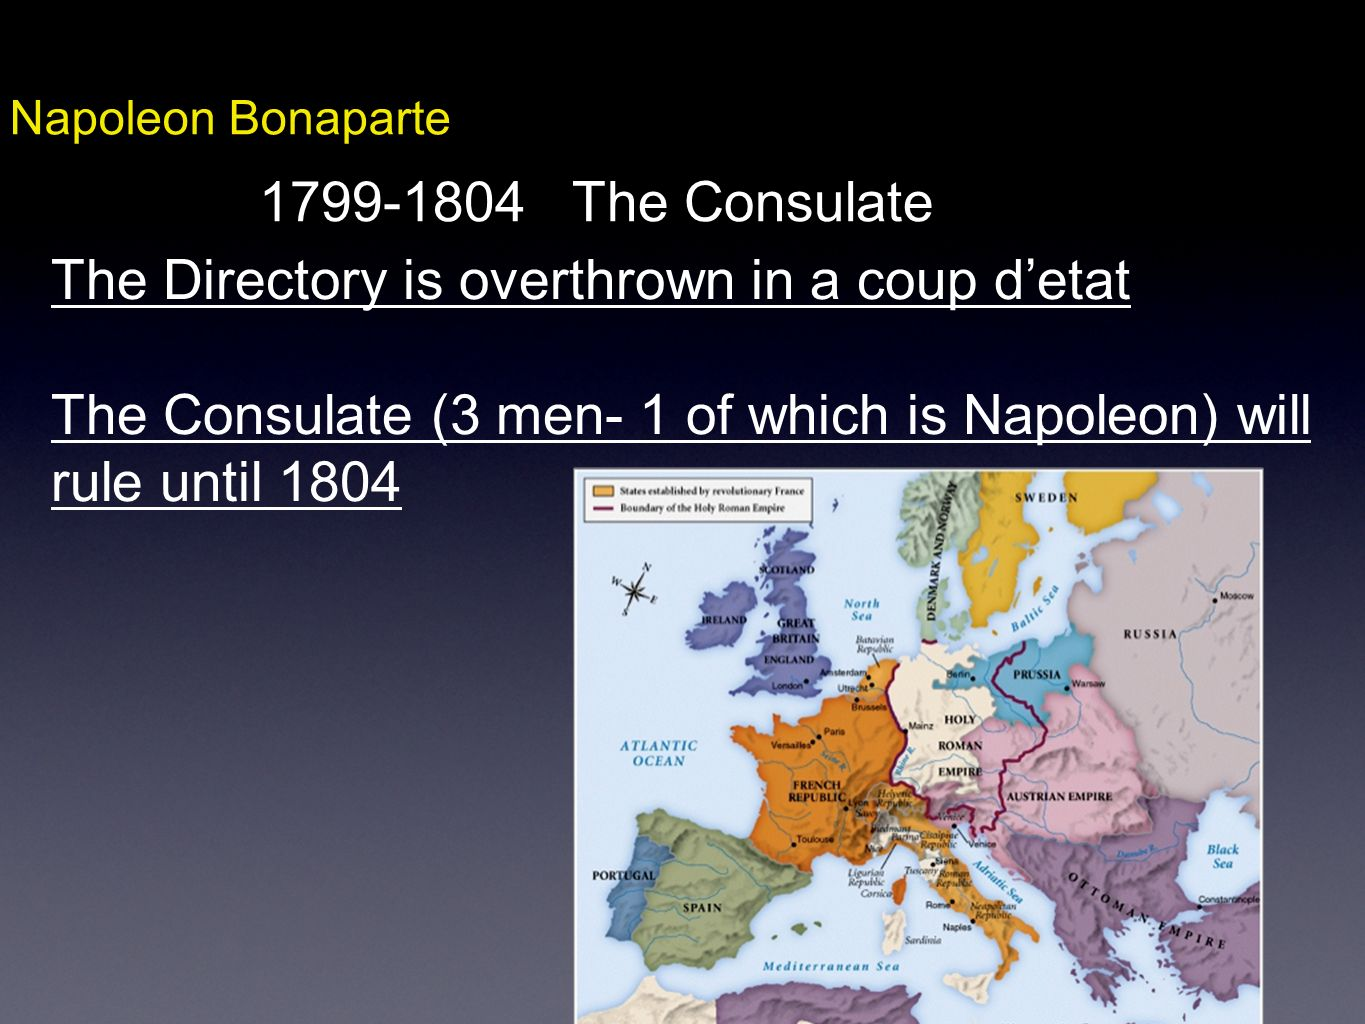 Napoleon Bonaparte 1799-1804 The Consulate The Directory is overthrown in a coup detat The Consulate (3 men- 1 of which is Napoleon) will rule until 1